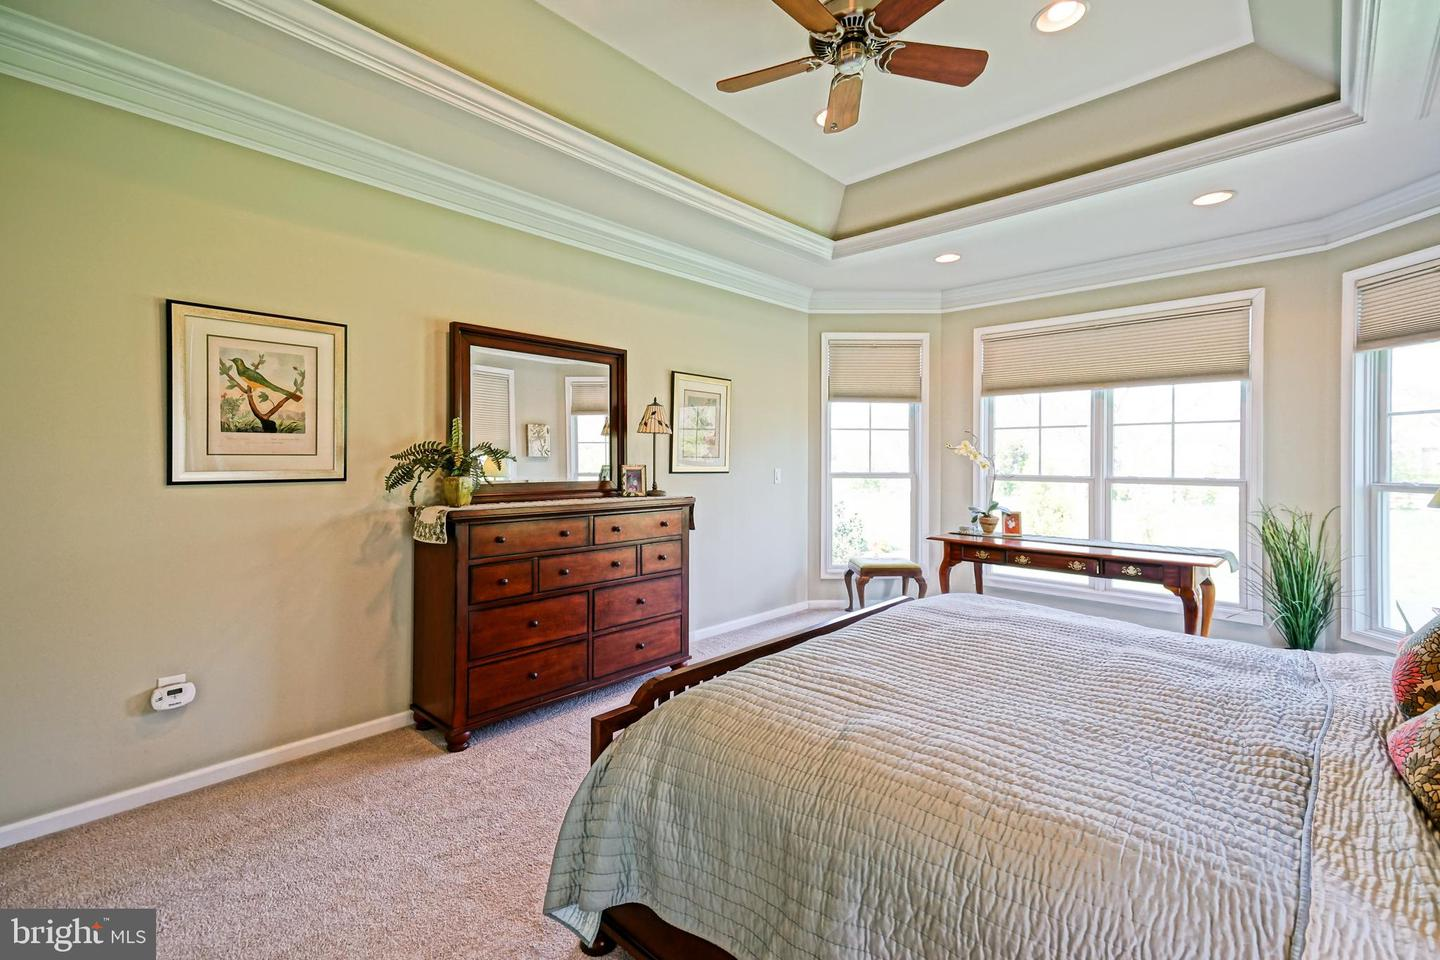 DESU139128-301667382663-2019-08-05-10-43-56 35222 Overfalls Dr N | Lewes, DE Real Estate For Sale | MLS# Desu139128  - Lee Ann Group